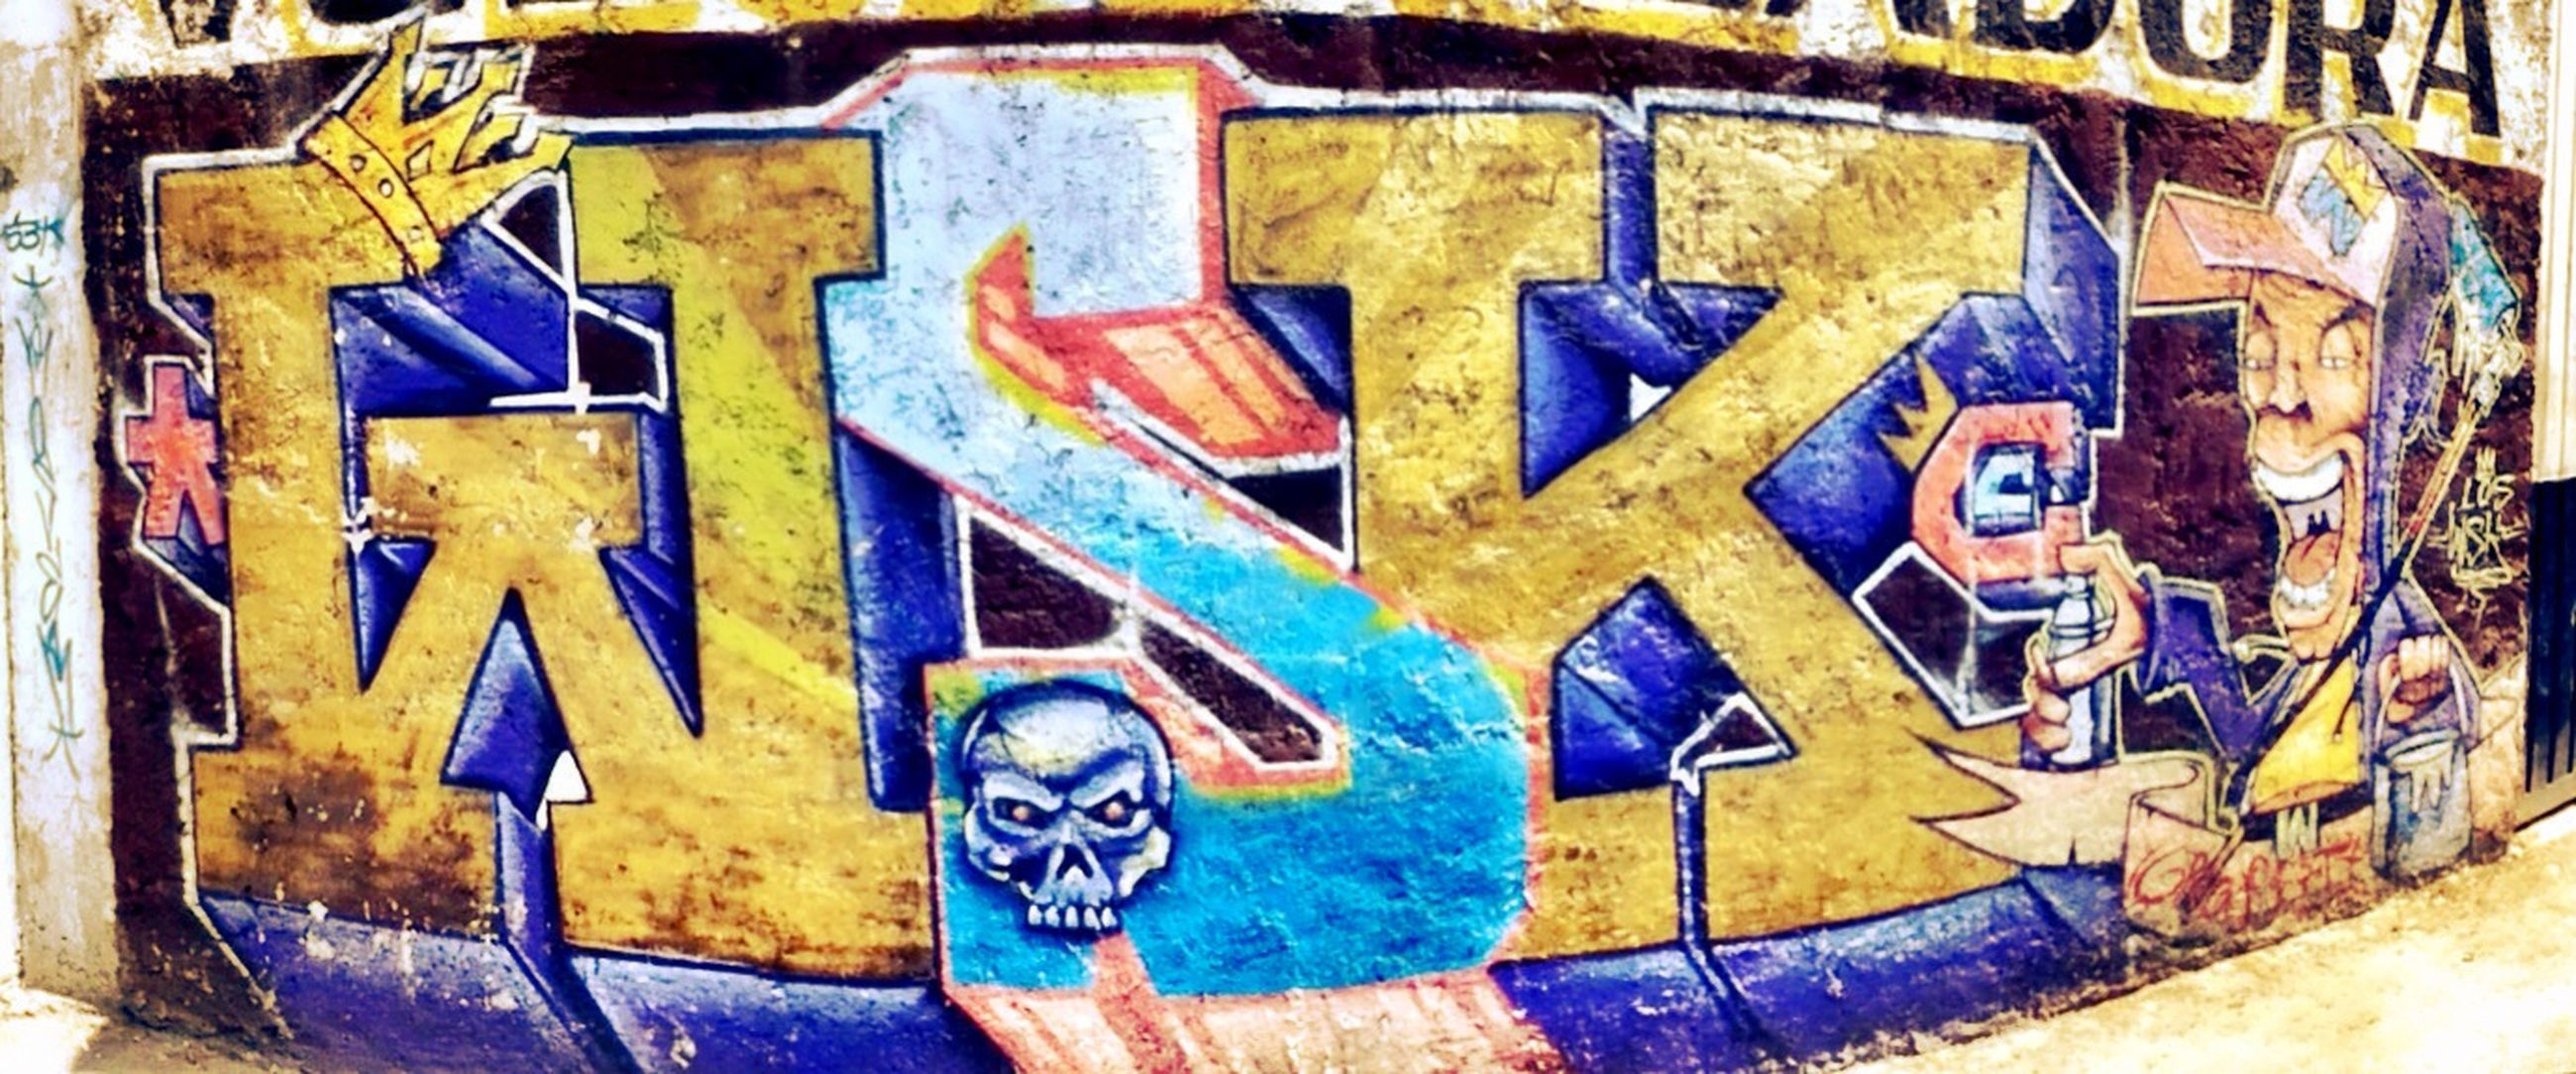 art, creativity, art and craft, graffiti, text, multi colored, wall - building feature, western script, communication, built structure, architecture, blue, wall, human representation, street art, close-up, mural, painting, building exterior, no people